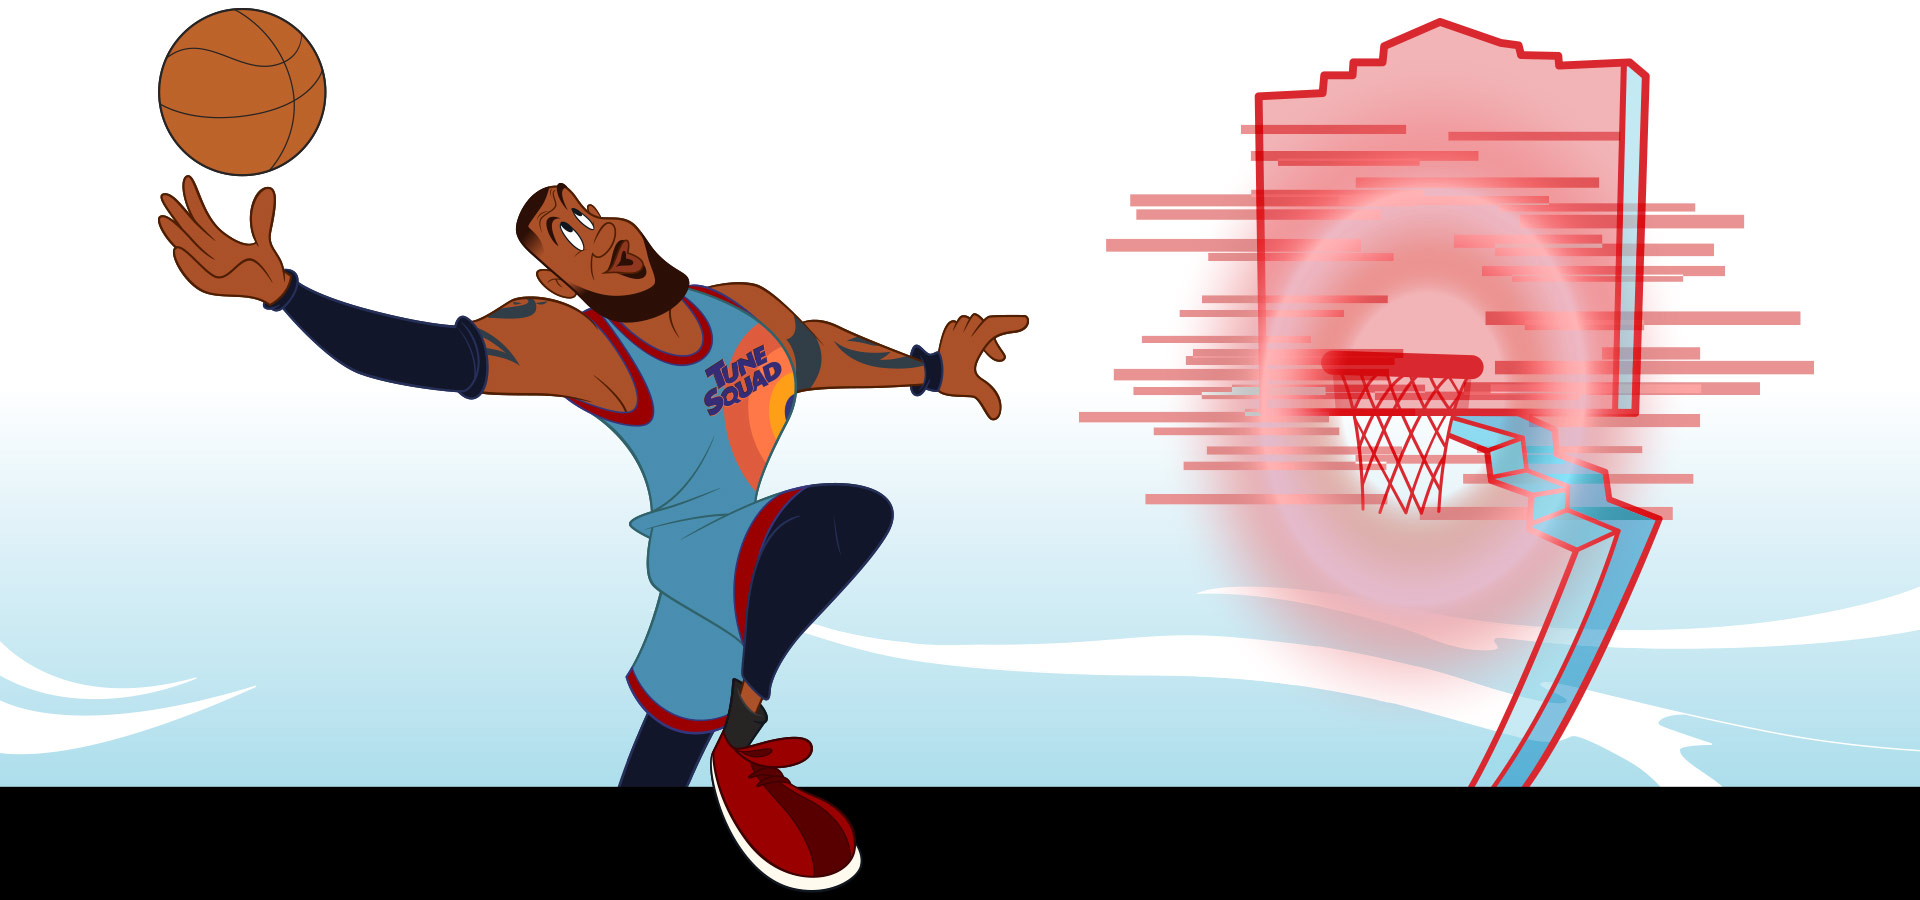 Cartoon Lebron James wearing a Tune Squad jersey, dunking a basketball